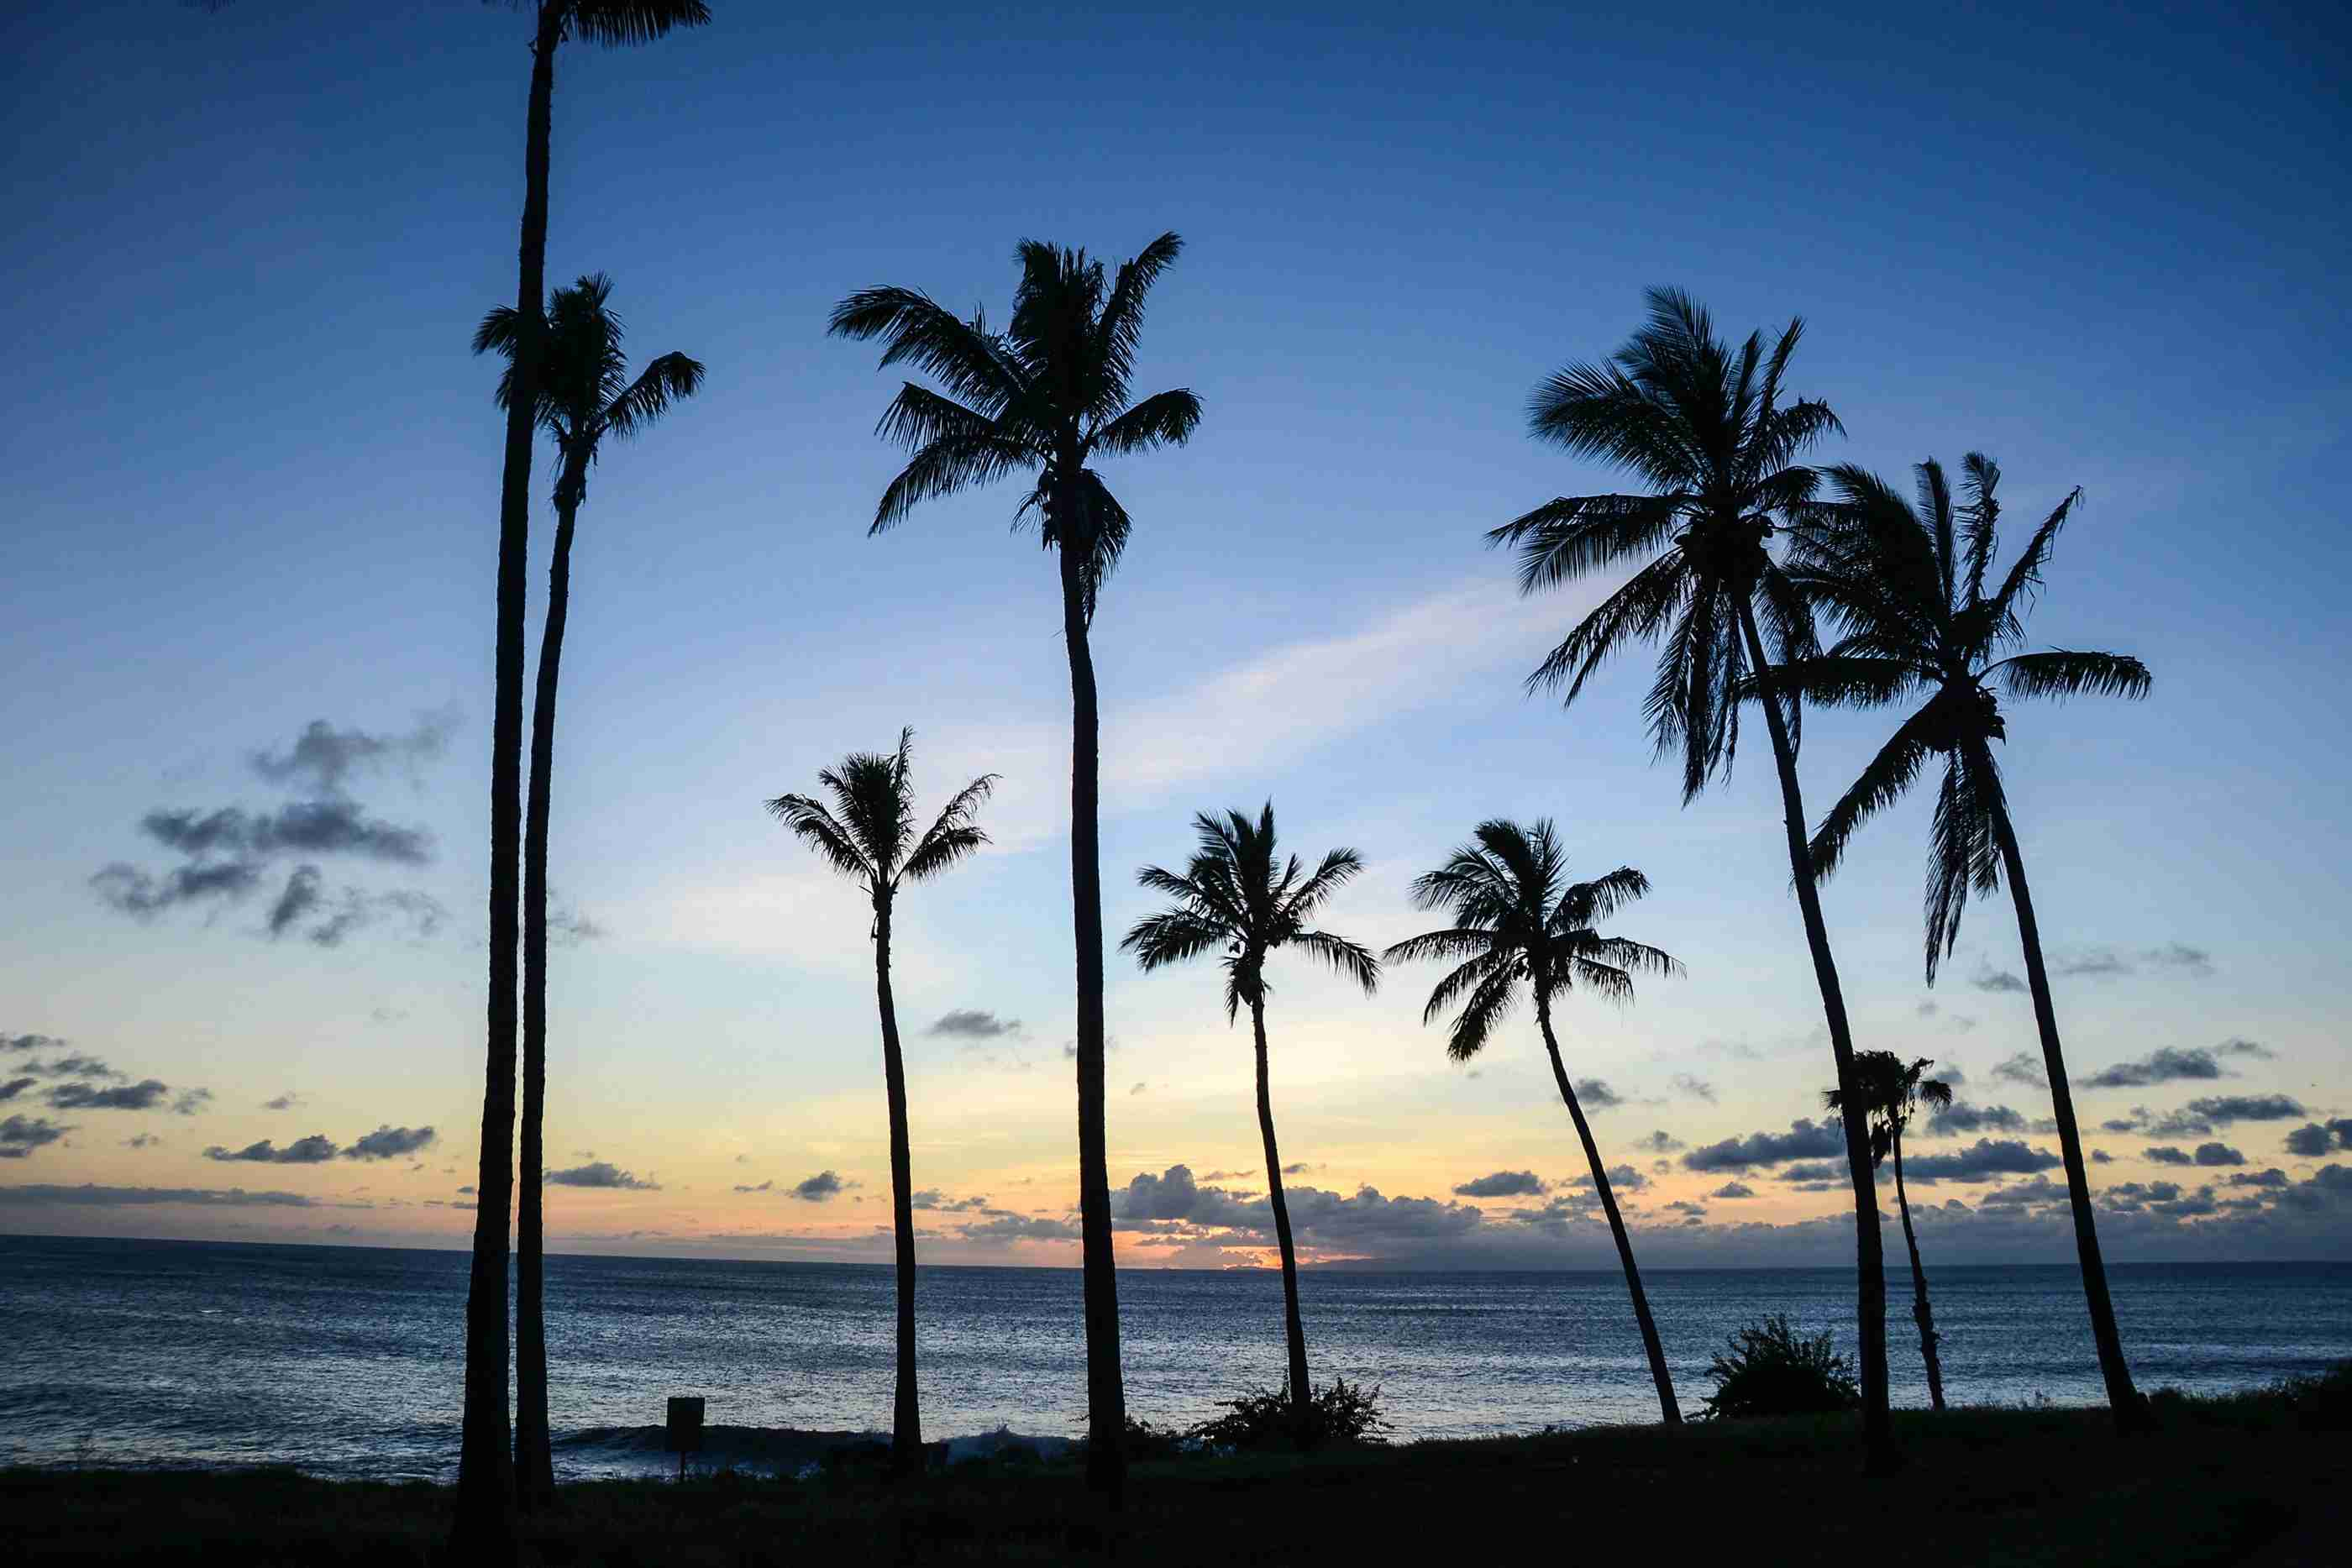 Sunsets from what used to be a Sheraton are spectacular in Molokai, Hawaii